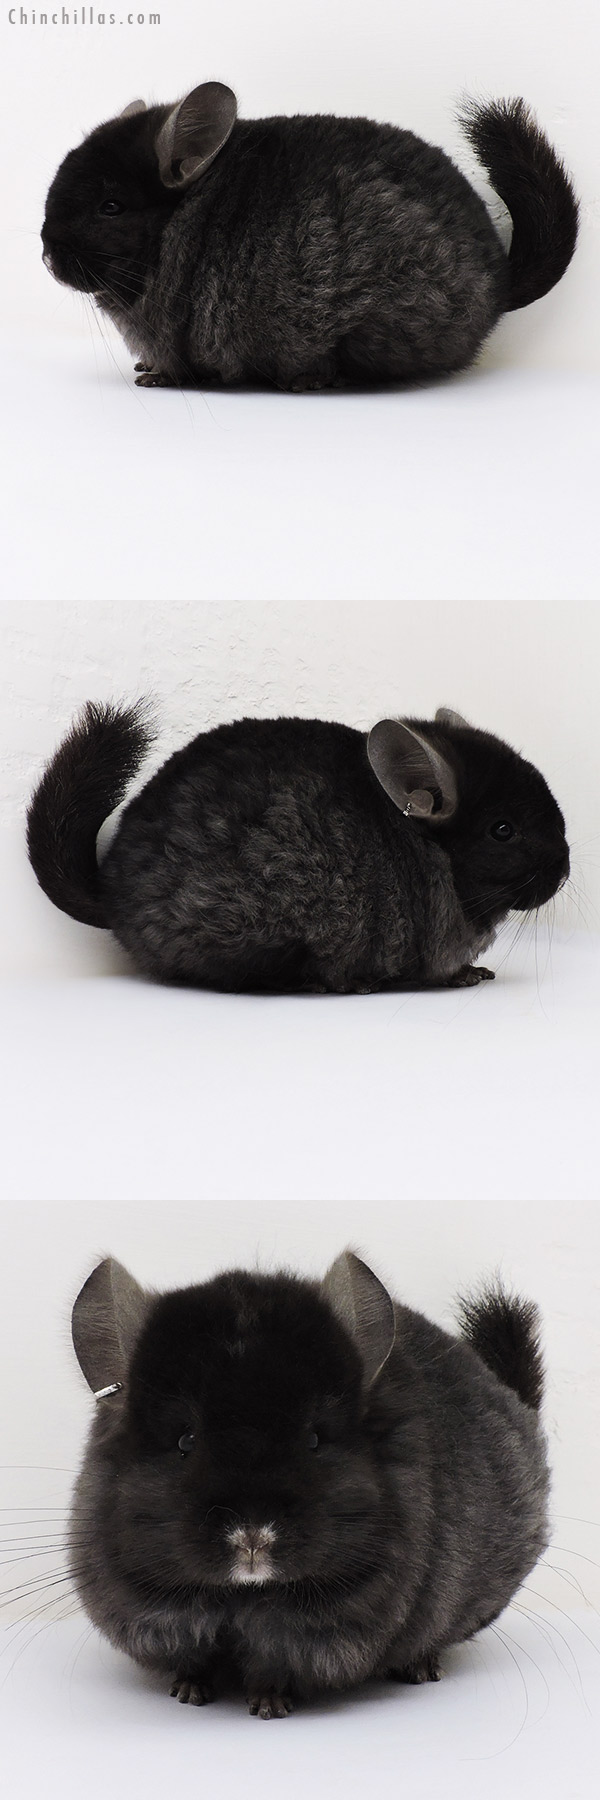 17051 Blocky Ebony CCCU Royal Imperial Angora Male Chinchilla